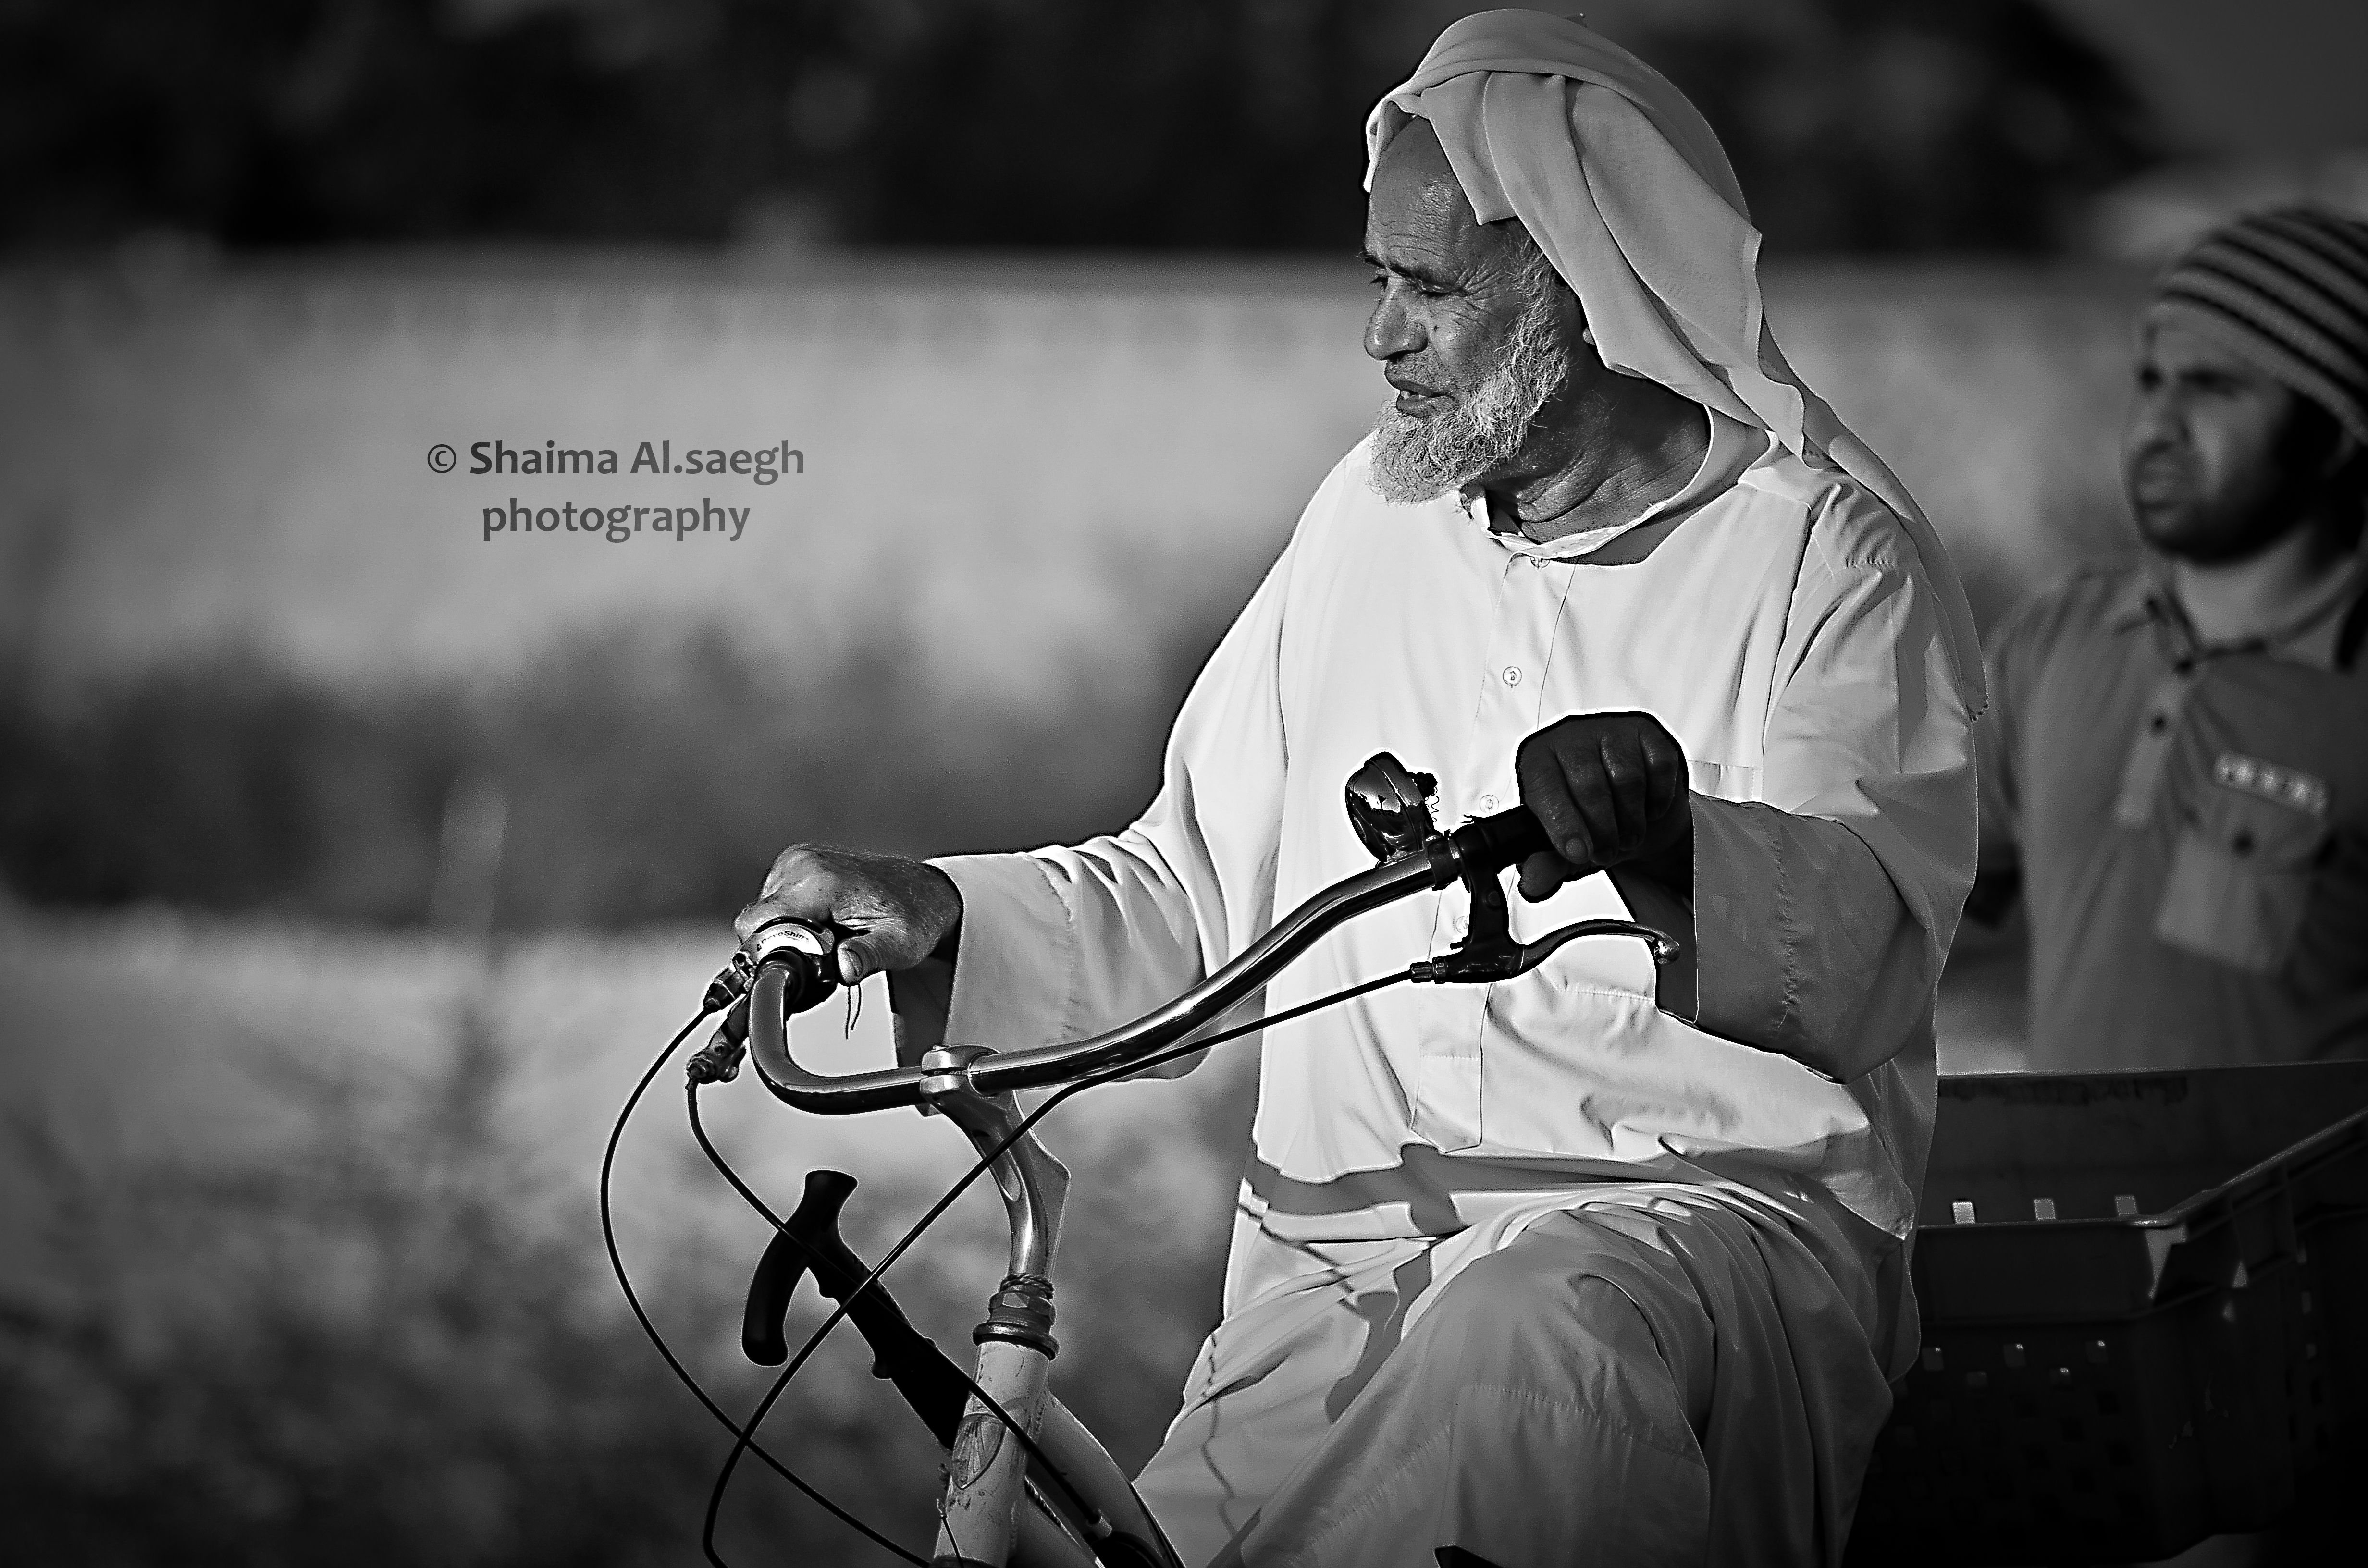 Black and white photo of an old man on bicycle